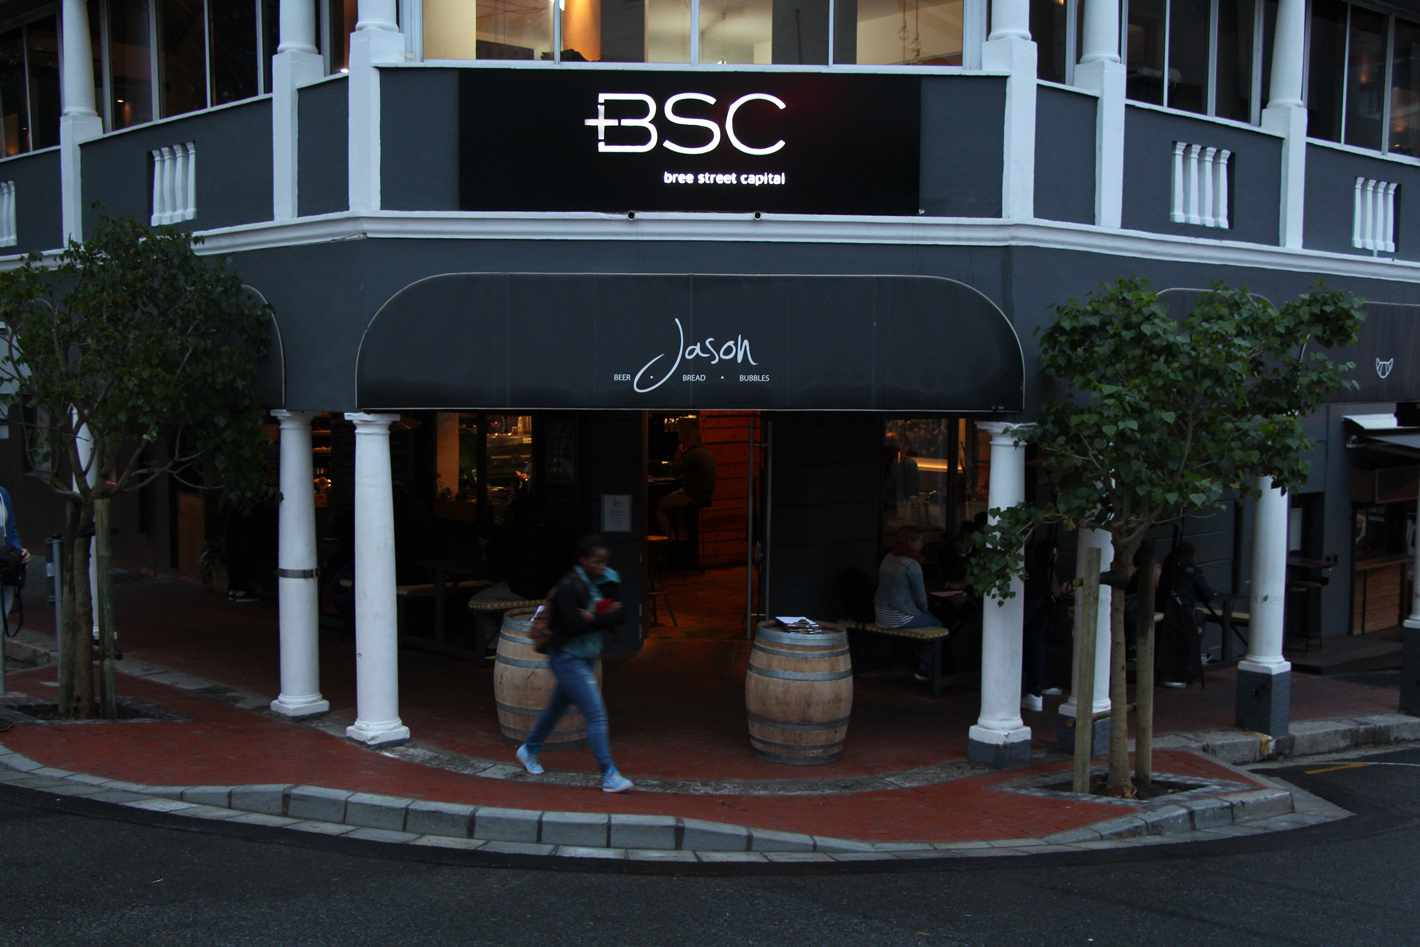 Front view of Jason's bakery on Bree Street